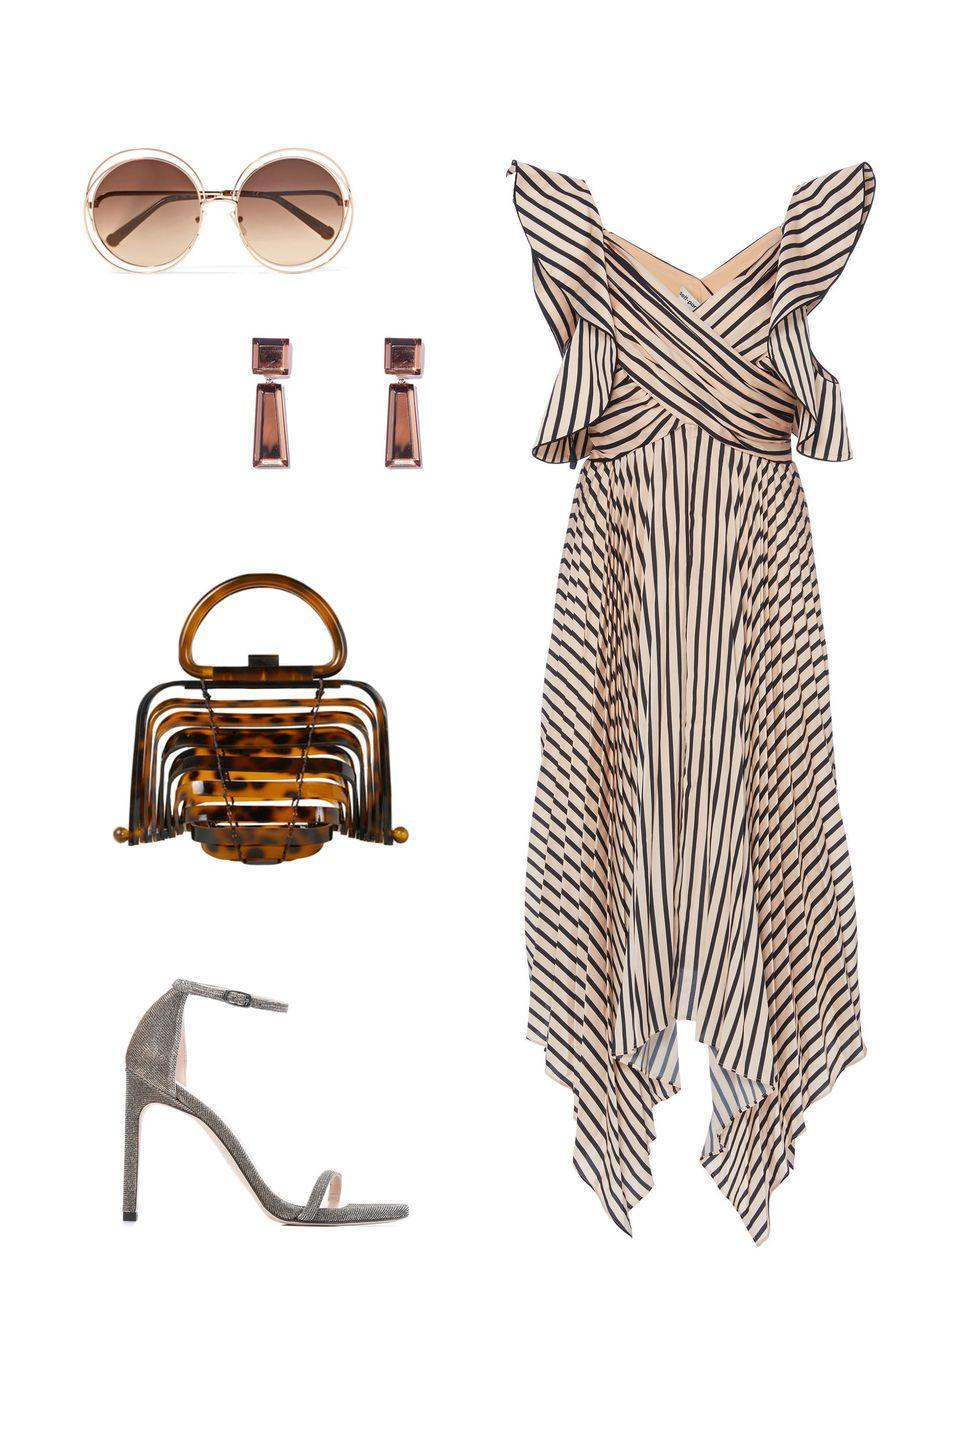 """<p>As the seasons change, expect to be invited to countless events outdoors. From vineyards to backyards, a neutral color palette of bronze and tan will look chic with a laid-back vibe. </p><p><em><strong>Self Portrait</strong> dress, $440,<a rel=""""nofollow noopener"""" href=""""https://www.modaoperandi.com/self-portrait-pf18/asymmetric-stripe-midi-dress"""" target=""""_blank"""" data-ylk=""""slk:modaoperandi.com"""" class=""""link rapid-noclick-resp"""">modaoperandi.com</a>; <strong>Stuart Weitzman</strong> sandals, $460,<a rel=""""nofollow noopener"""" href=""""https://www.mytheresa.com/en-de/stuart-weitzman-nudistsong-metallic-sandals-899373.html"""" target=""""_blank"""" data-ylk=""""slk:mytheresa.com"""" class=""""link rapid-noclick-resp"""">mytheresa.com</a>; <strong>Cult Gaia</strong> clutch, $330, <a rel=""""nofollow noopener"""" href=""""https://www.themodist.com/en/accessories/bags/lilleth-tortoiseshell-acrylic-top-handle-bag/137221207.html?cgid=accessories-bags"""" target=""""_blank"""" data-ylk=""""slk:themodist.com"""" class=""""link rapid-noclick-resp"""">themodist.com</a>; <strong>Rachel Comey</strong> earrings, $125, <a rel=""""nofollow noopener"""" href=""""https://shop.harpersbazaar.com/designers/rachel-comey/beam-earrings-in-russet-27390.html"""" target=""""_blank"""" data-ylk=""""slk:shopBAZAAR.com"""" class=""""link rapid-noclick-resp"""">shopBAZAAR.com</a>; <strong>Chloé</strong> sunglasses, $400,<a rel=""""nofollow noopener"""" href=""""https://www.net-a-porter.com/us/en/product/1091425/chloe/carlina-round-frame-rose-gold-tone-sunglasses"""" target=""""_blank"""" data-ylk=""""slk:netaporter.com"""" class=""""link rapid-noclick-resp"""">netaporter.com</a>.</em></p>"""